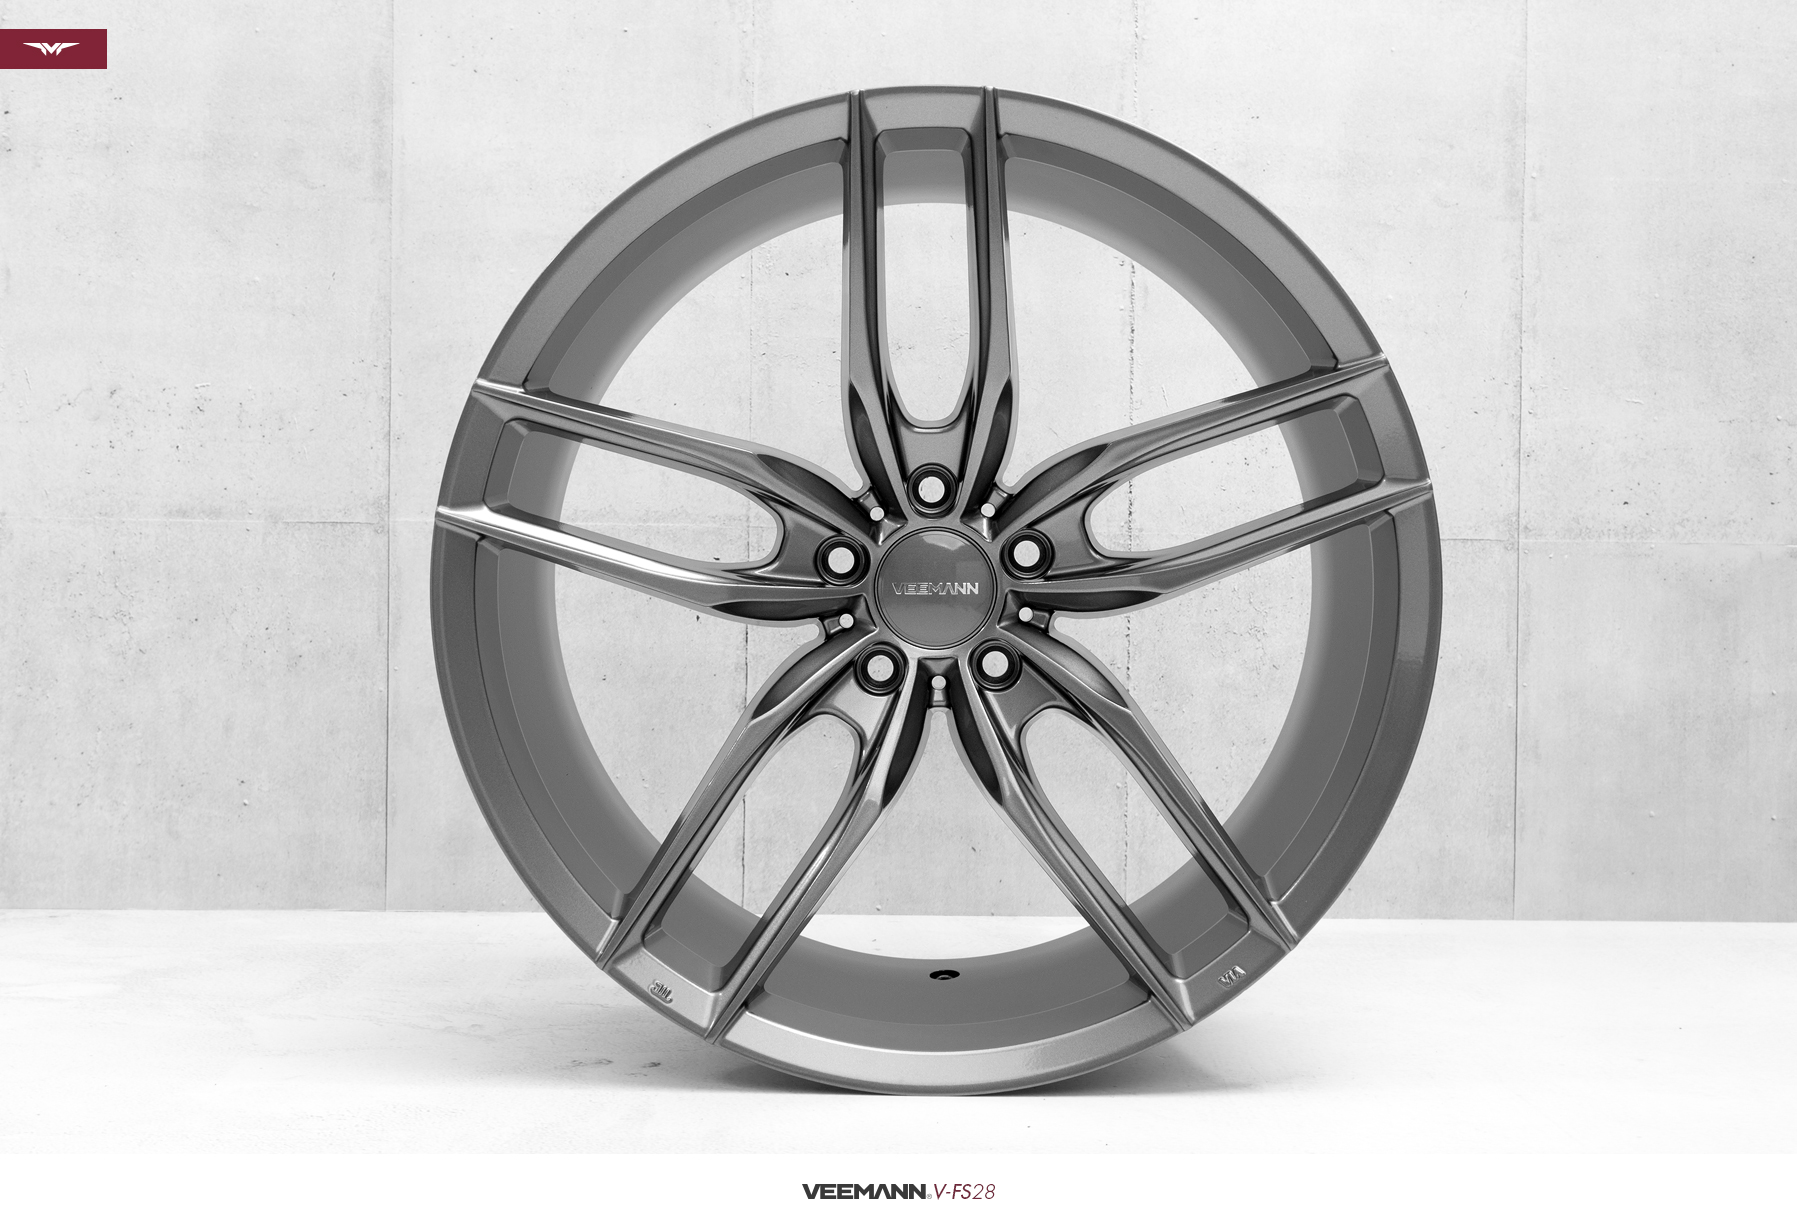 "NEW 20"" VEEMANN V-FS28 ALLOYS IN GLOSS GRAPHITE WITH DEEPER CONCAVE 10"" REARS"